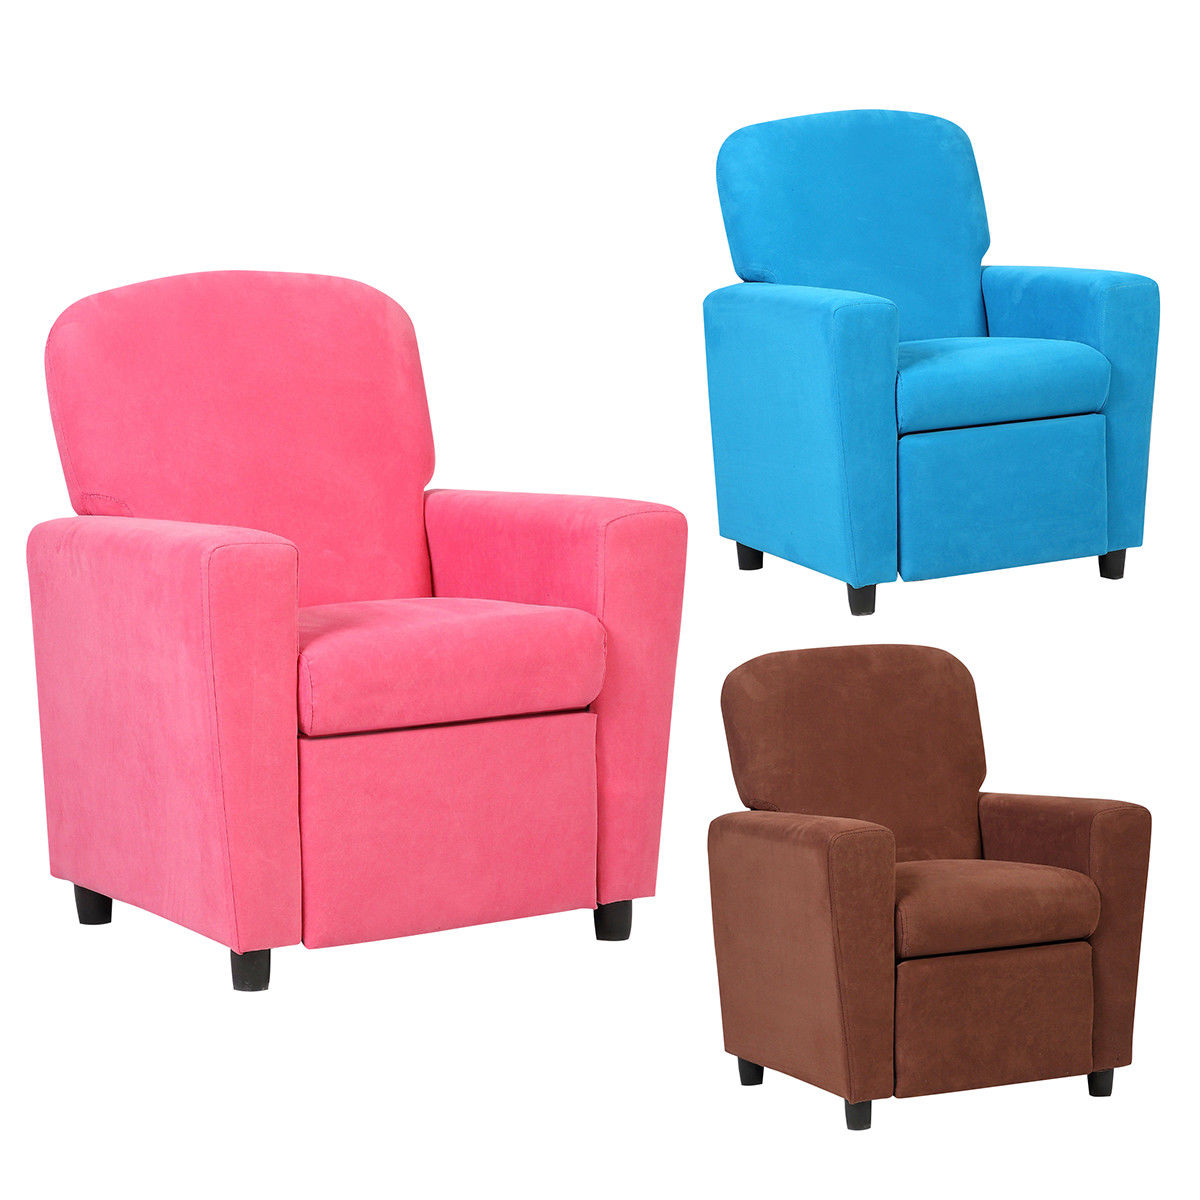 Costway Kids Recliner Sofa Armrest Chair Couch Lounge Children Living Room Furniture